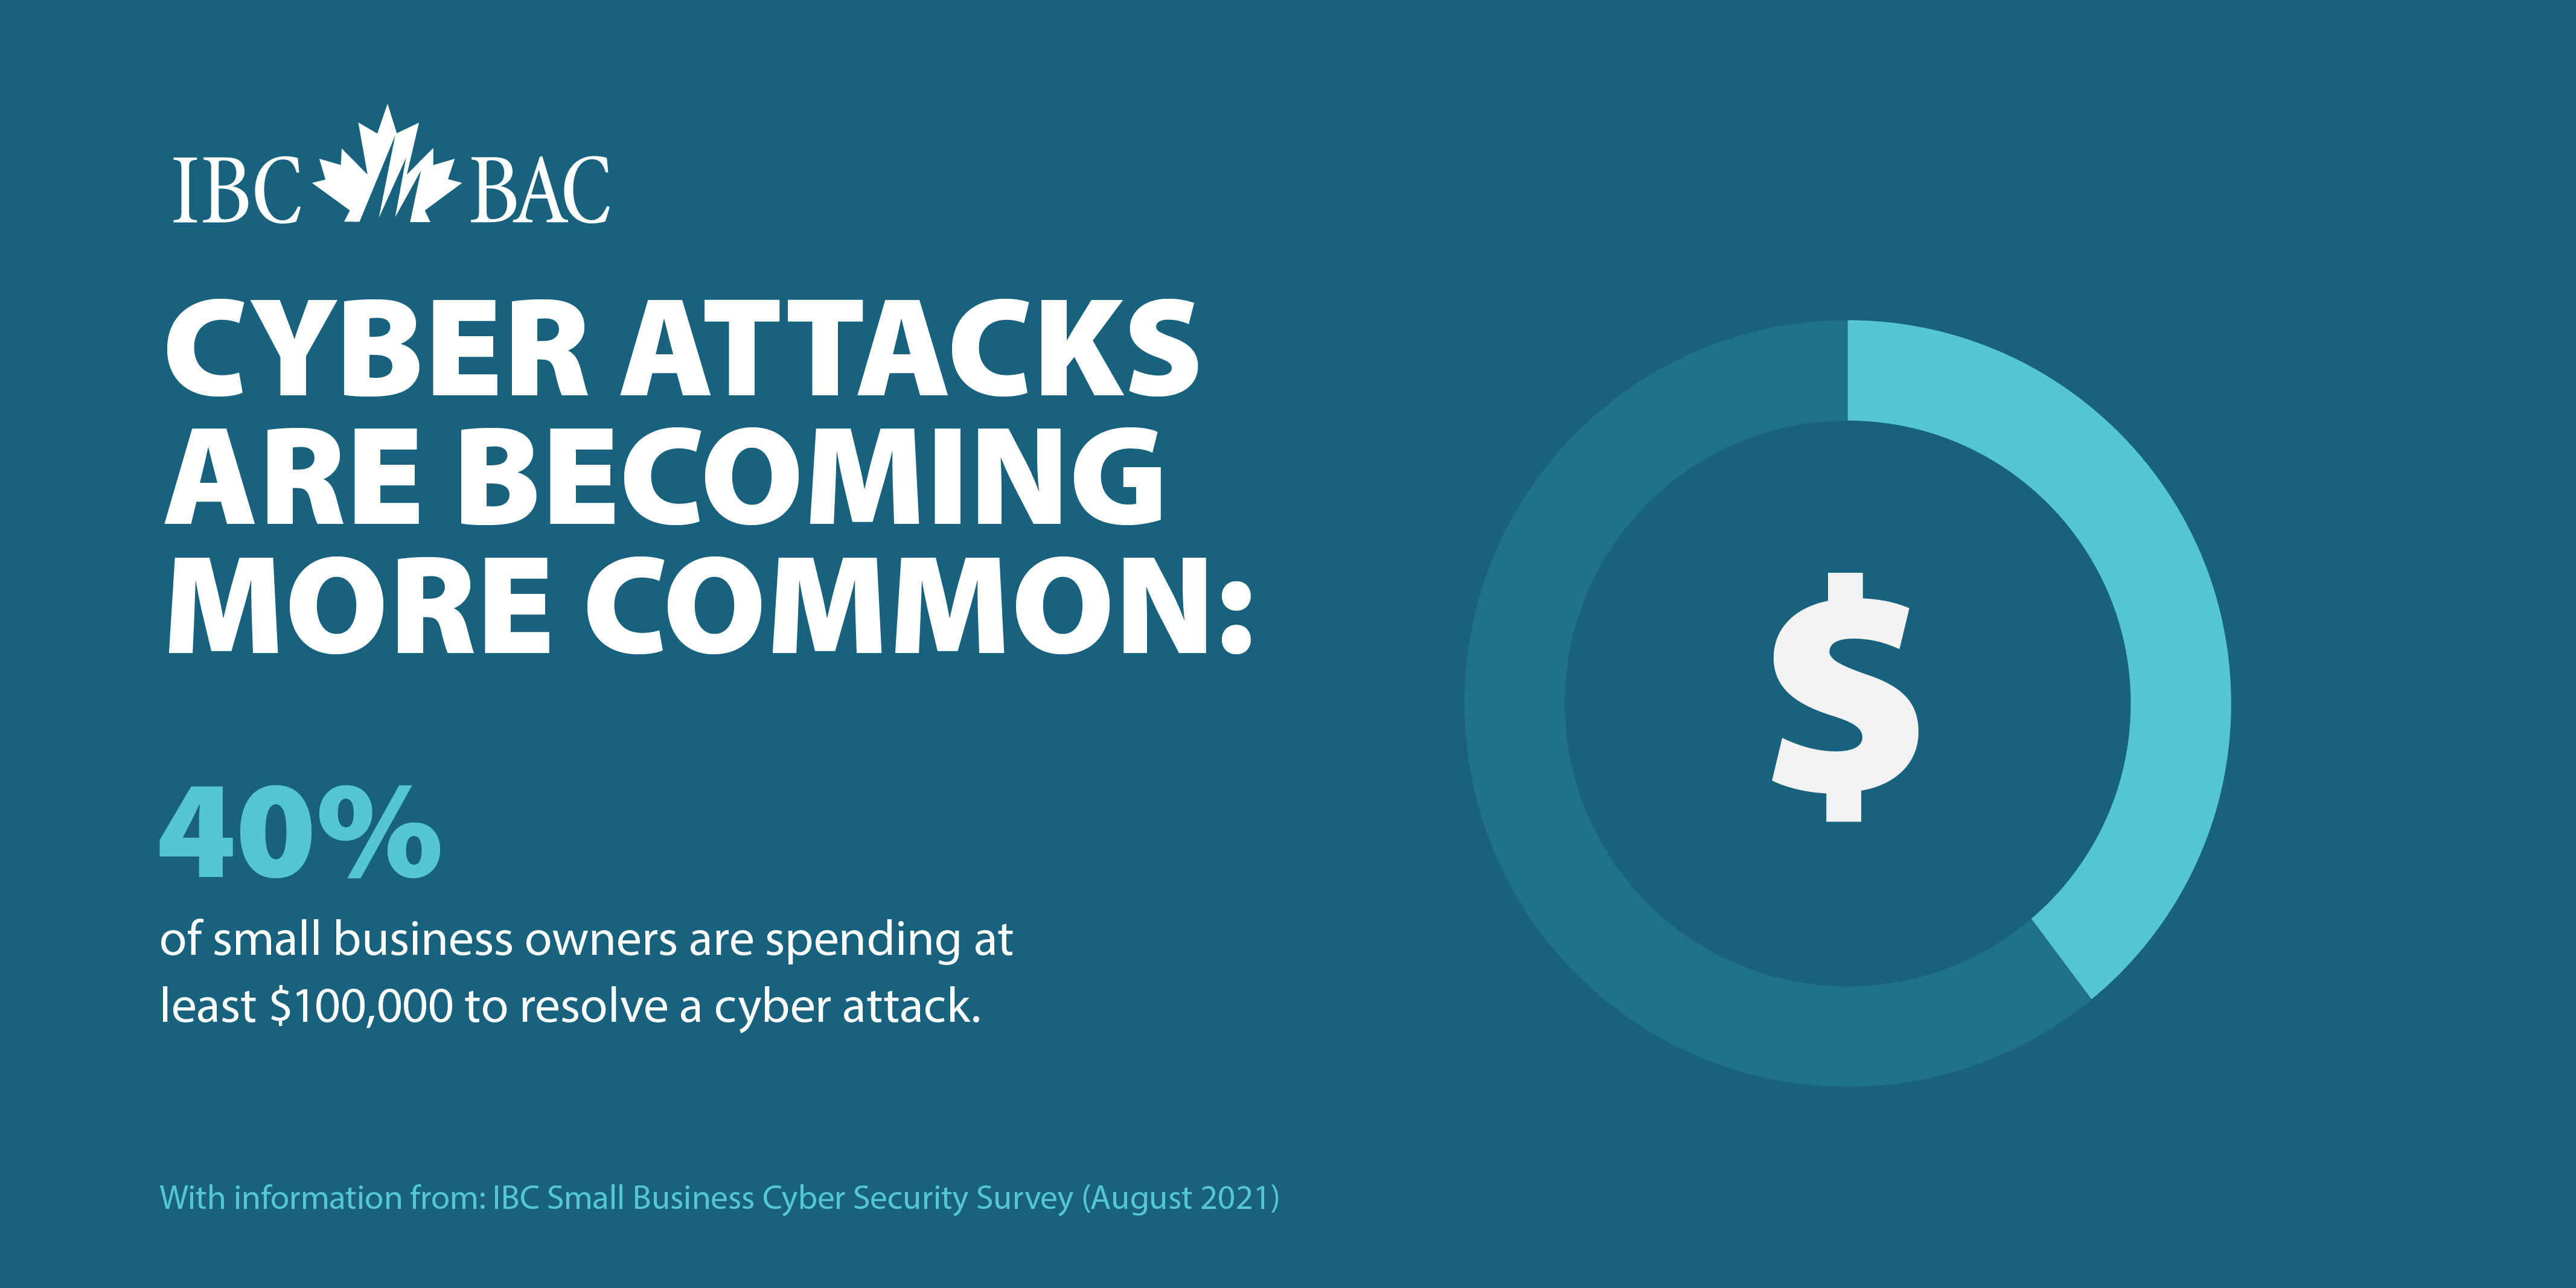 Cyber attacks are becoming more common